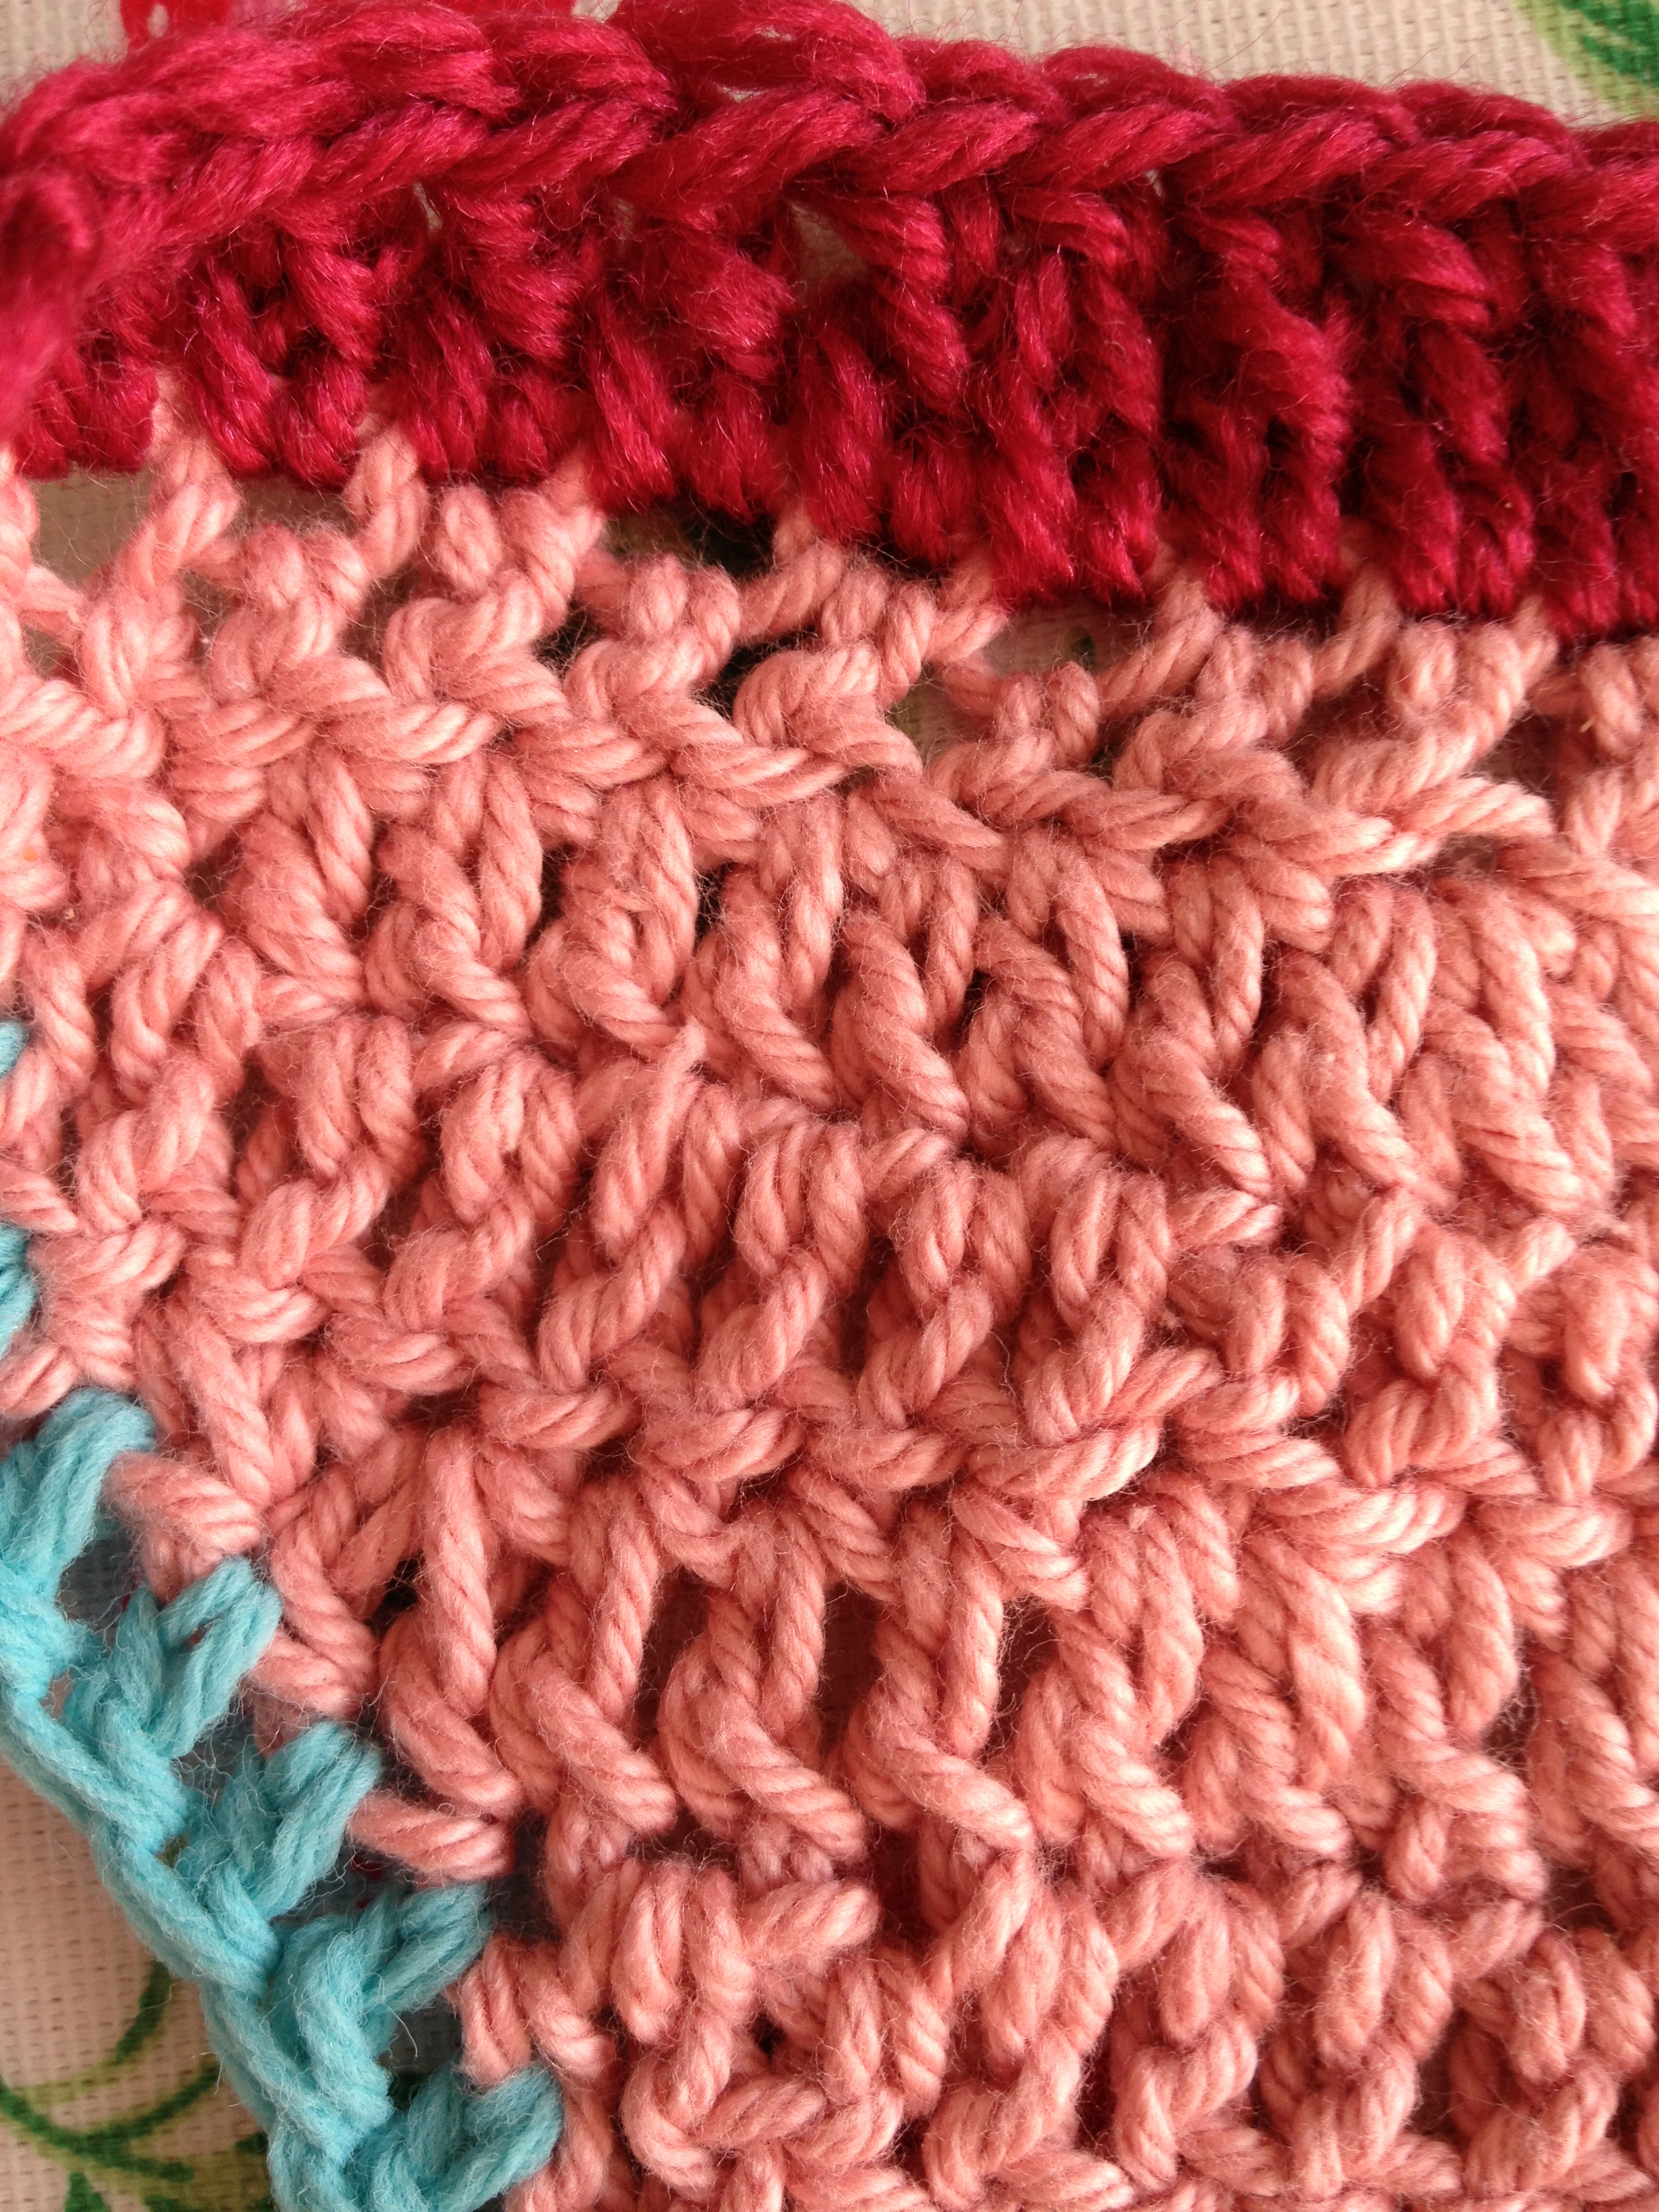 Crochet Knit Stitch : Cracking Crochet Knit Stitch Sew